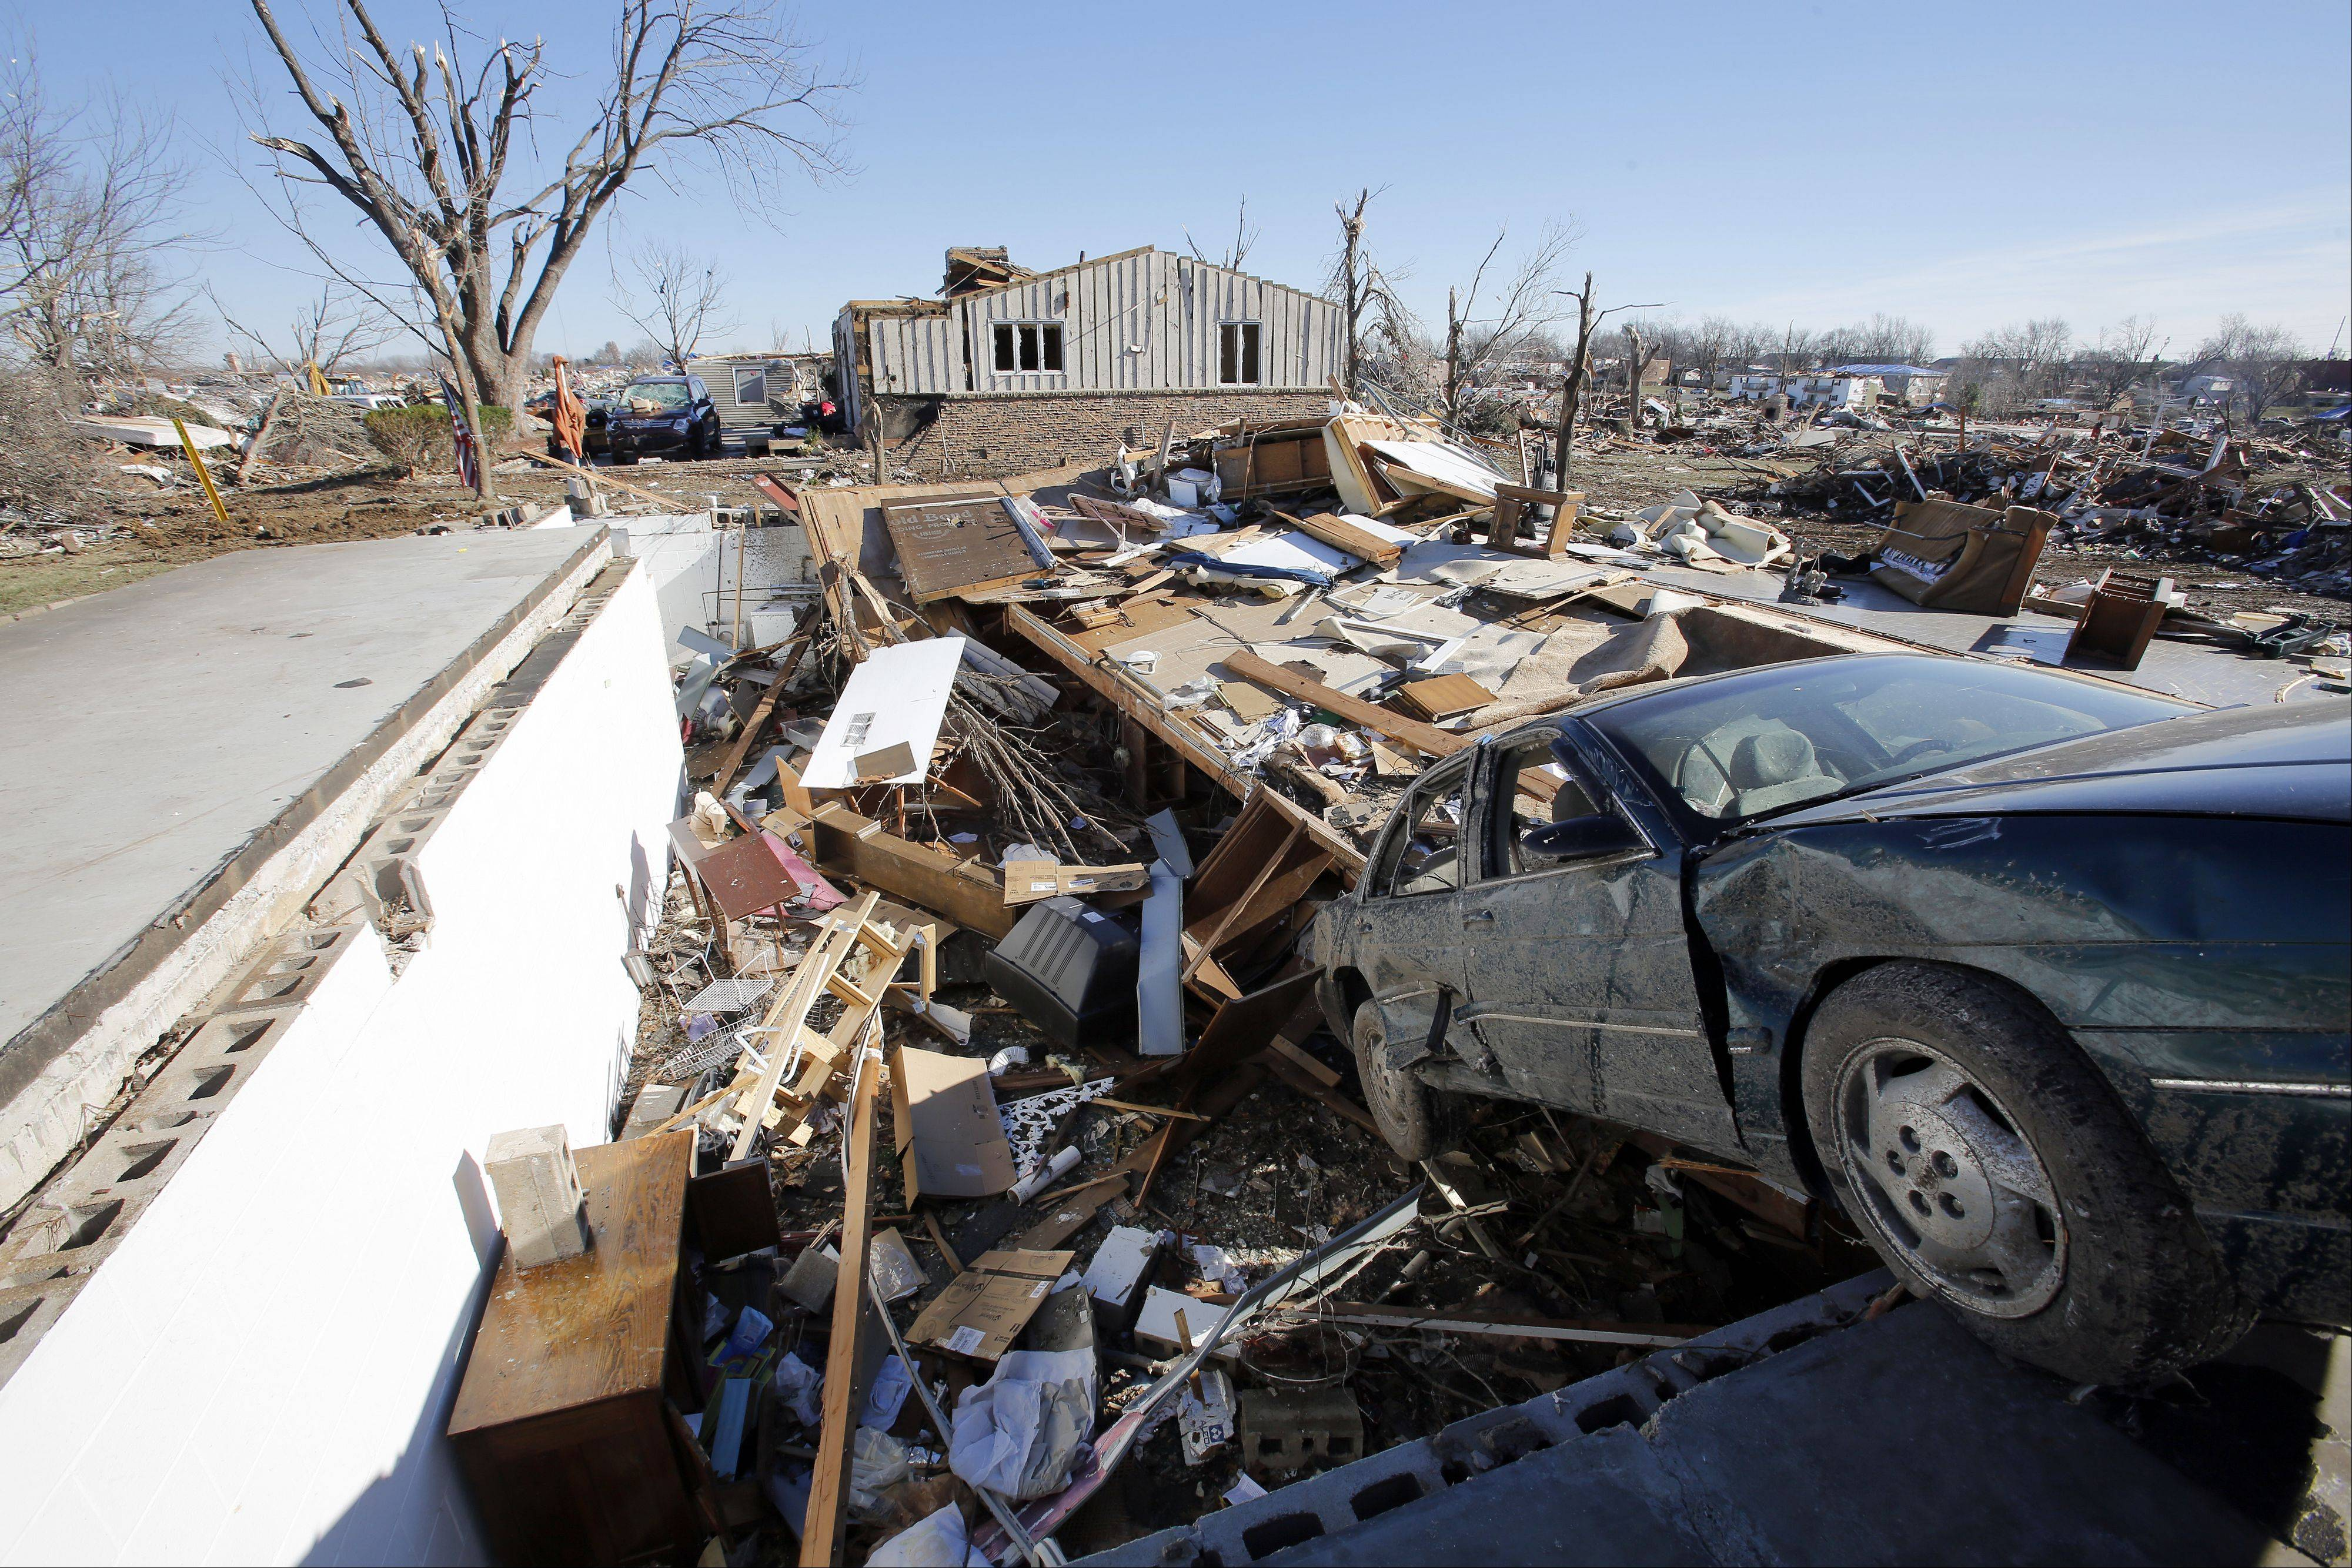 A group of 50 Carmel Catholic High School students, along with six teachers and coaches from the Mundelein school, will travel to downstate Washington later this week to help victims of November's devastating tornado.